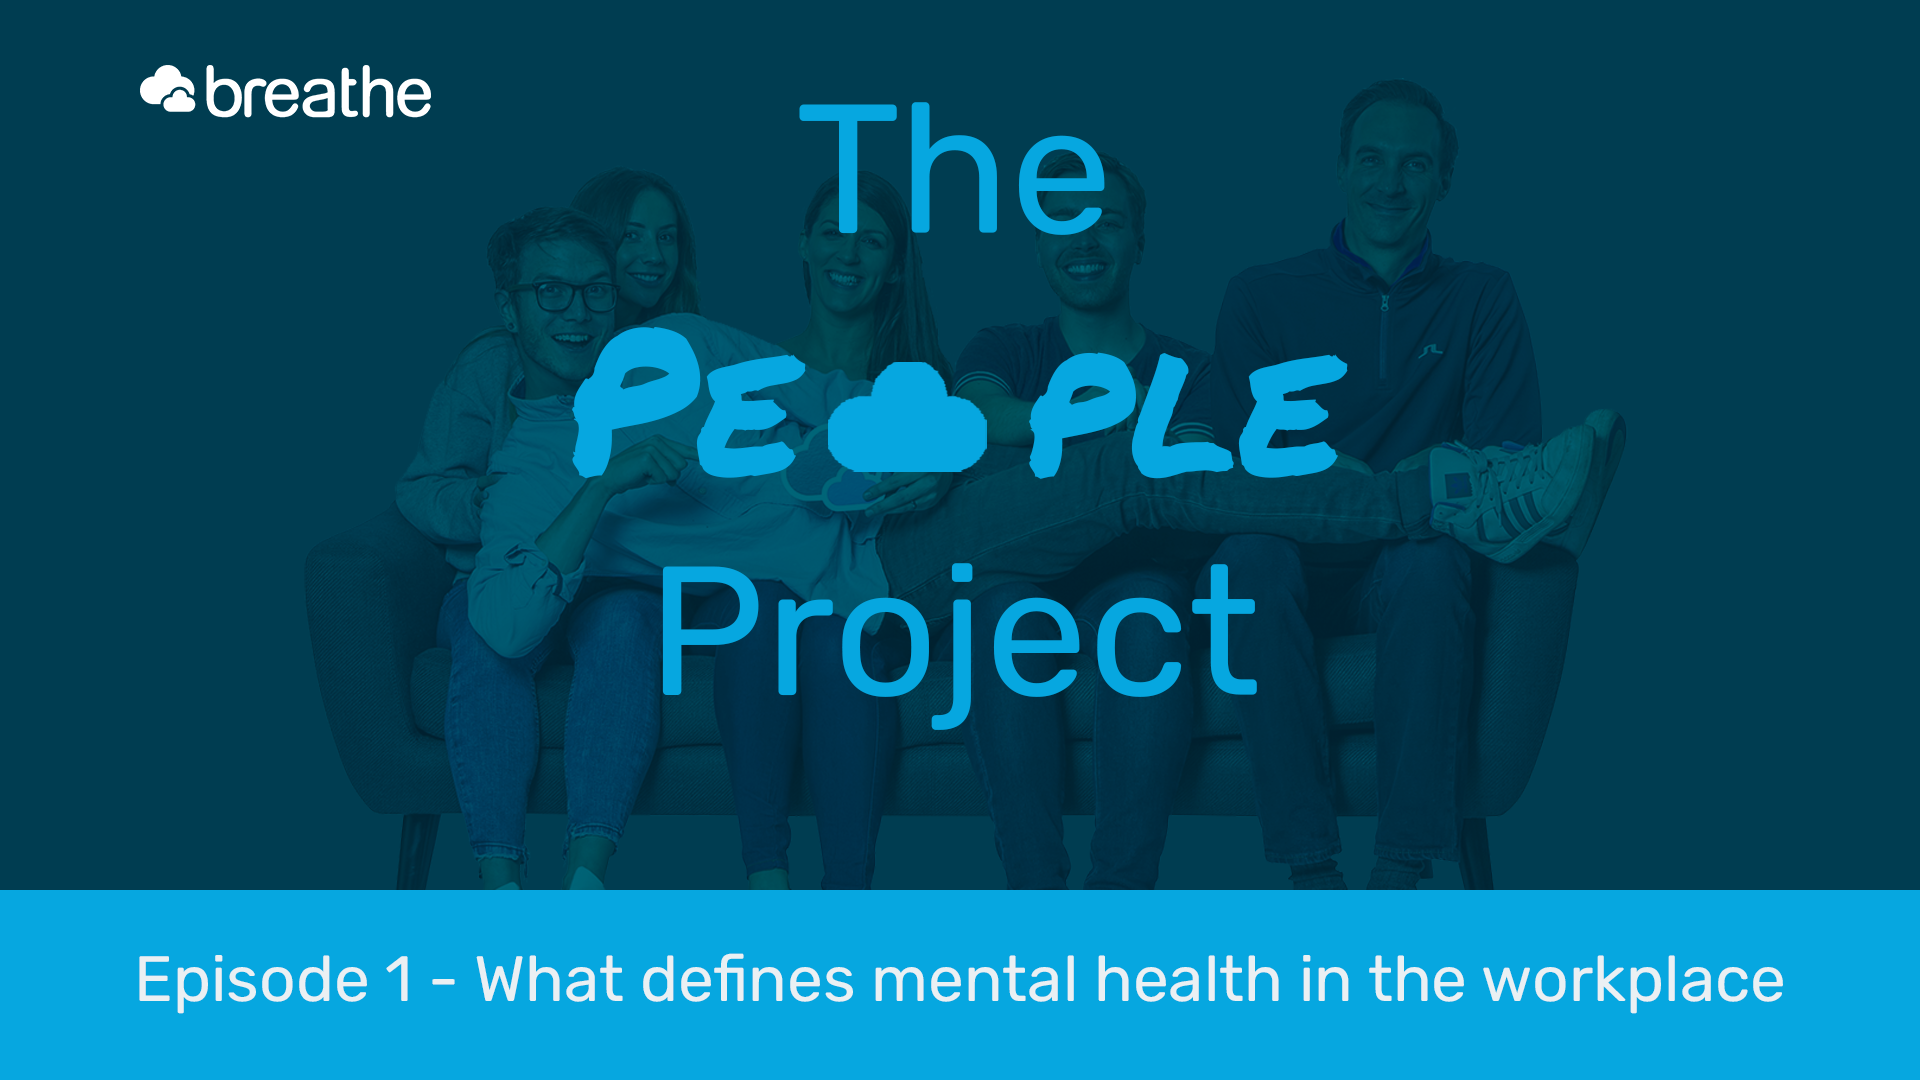 People project podcast defines mental health at work